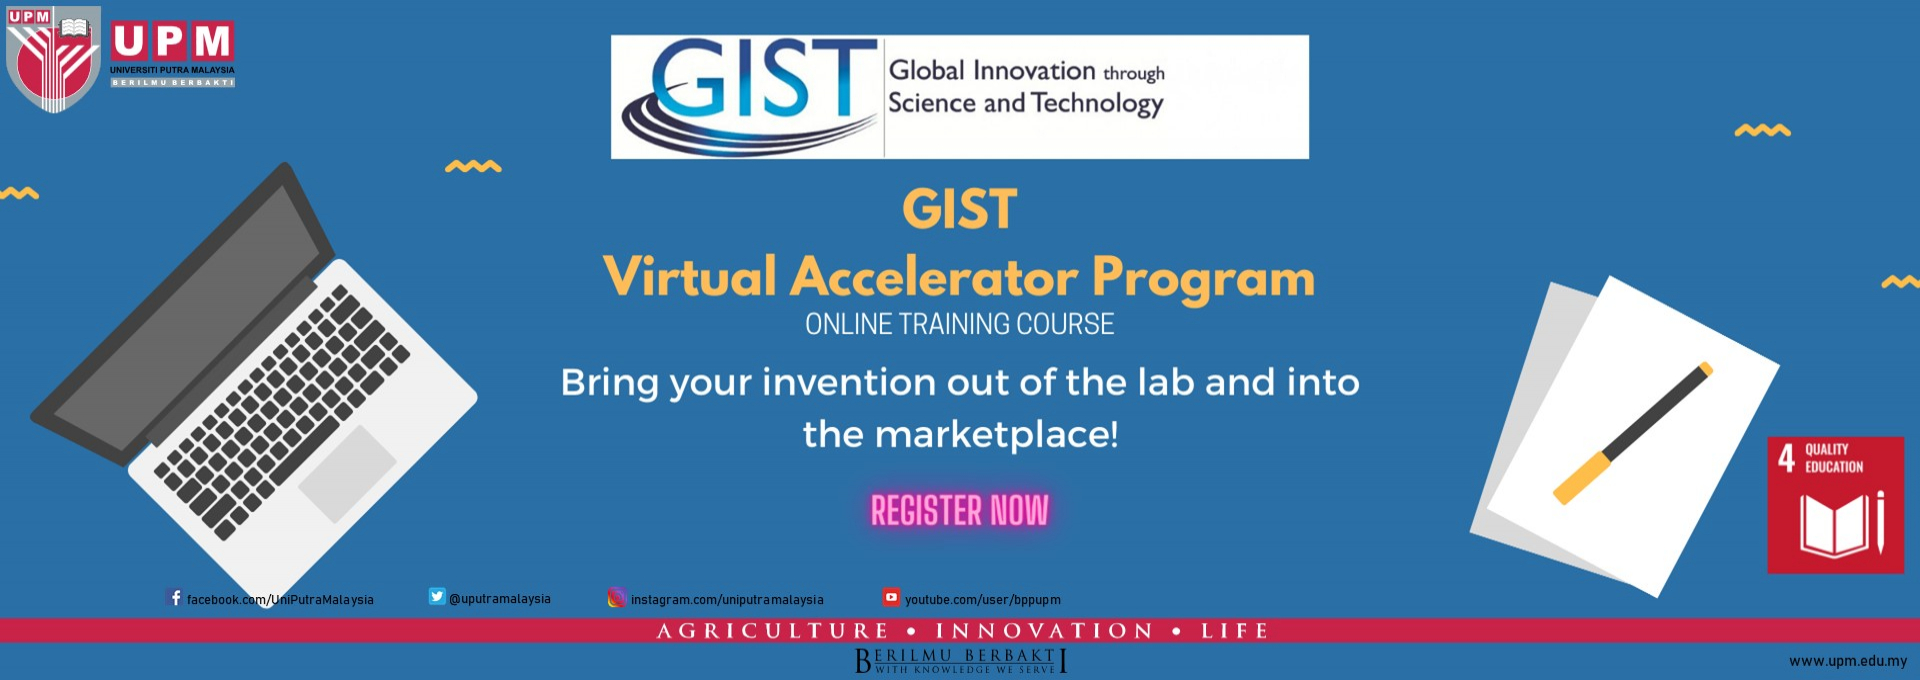 GIST Virtual Accelerator Program